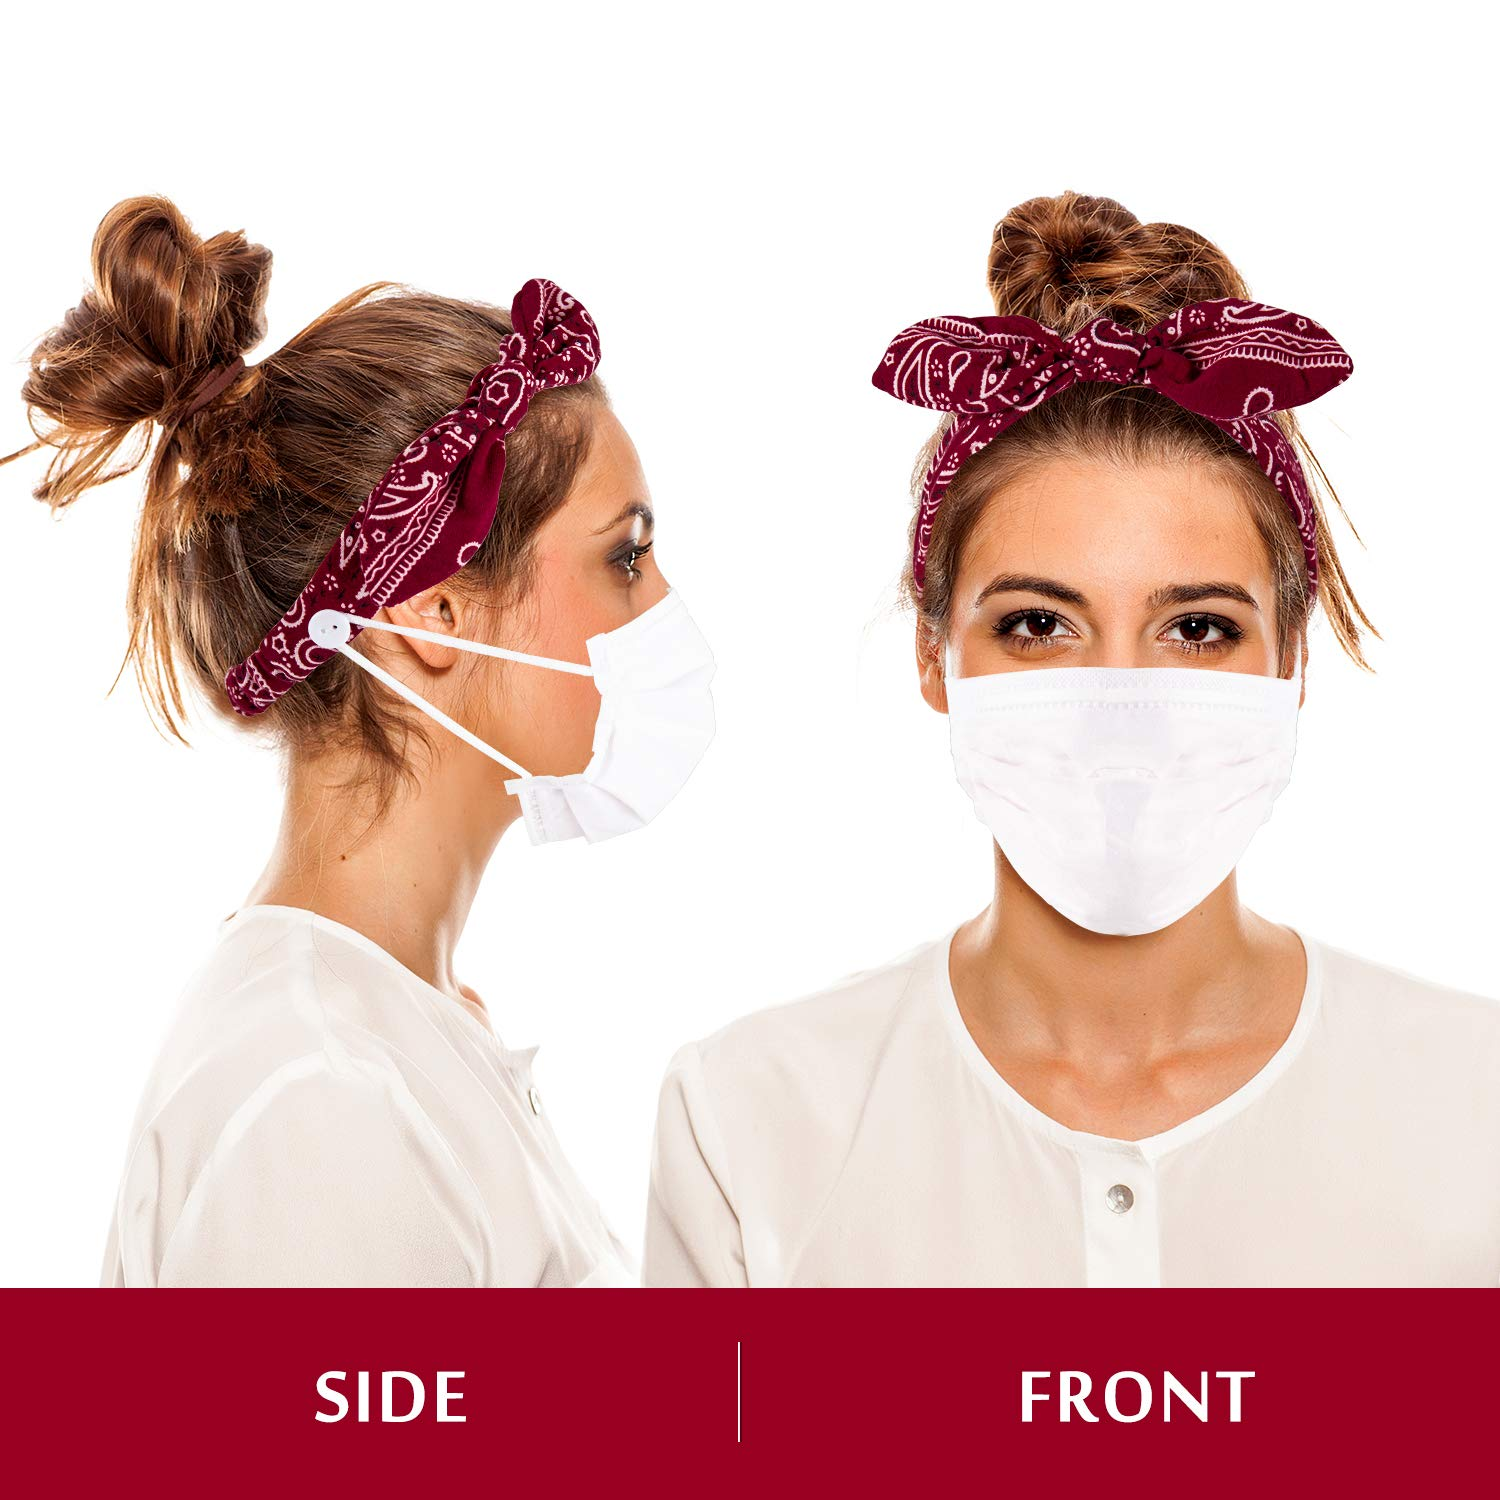 Whaline 6Pcs Button Headbands Paisley Rabbit Ear Headbands Stretchy Adjustable Bow Knotted Ear Saver Holder Soft Twisted Hair Wrap Accessories for Nurses Doctors Women Girls